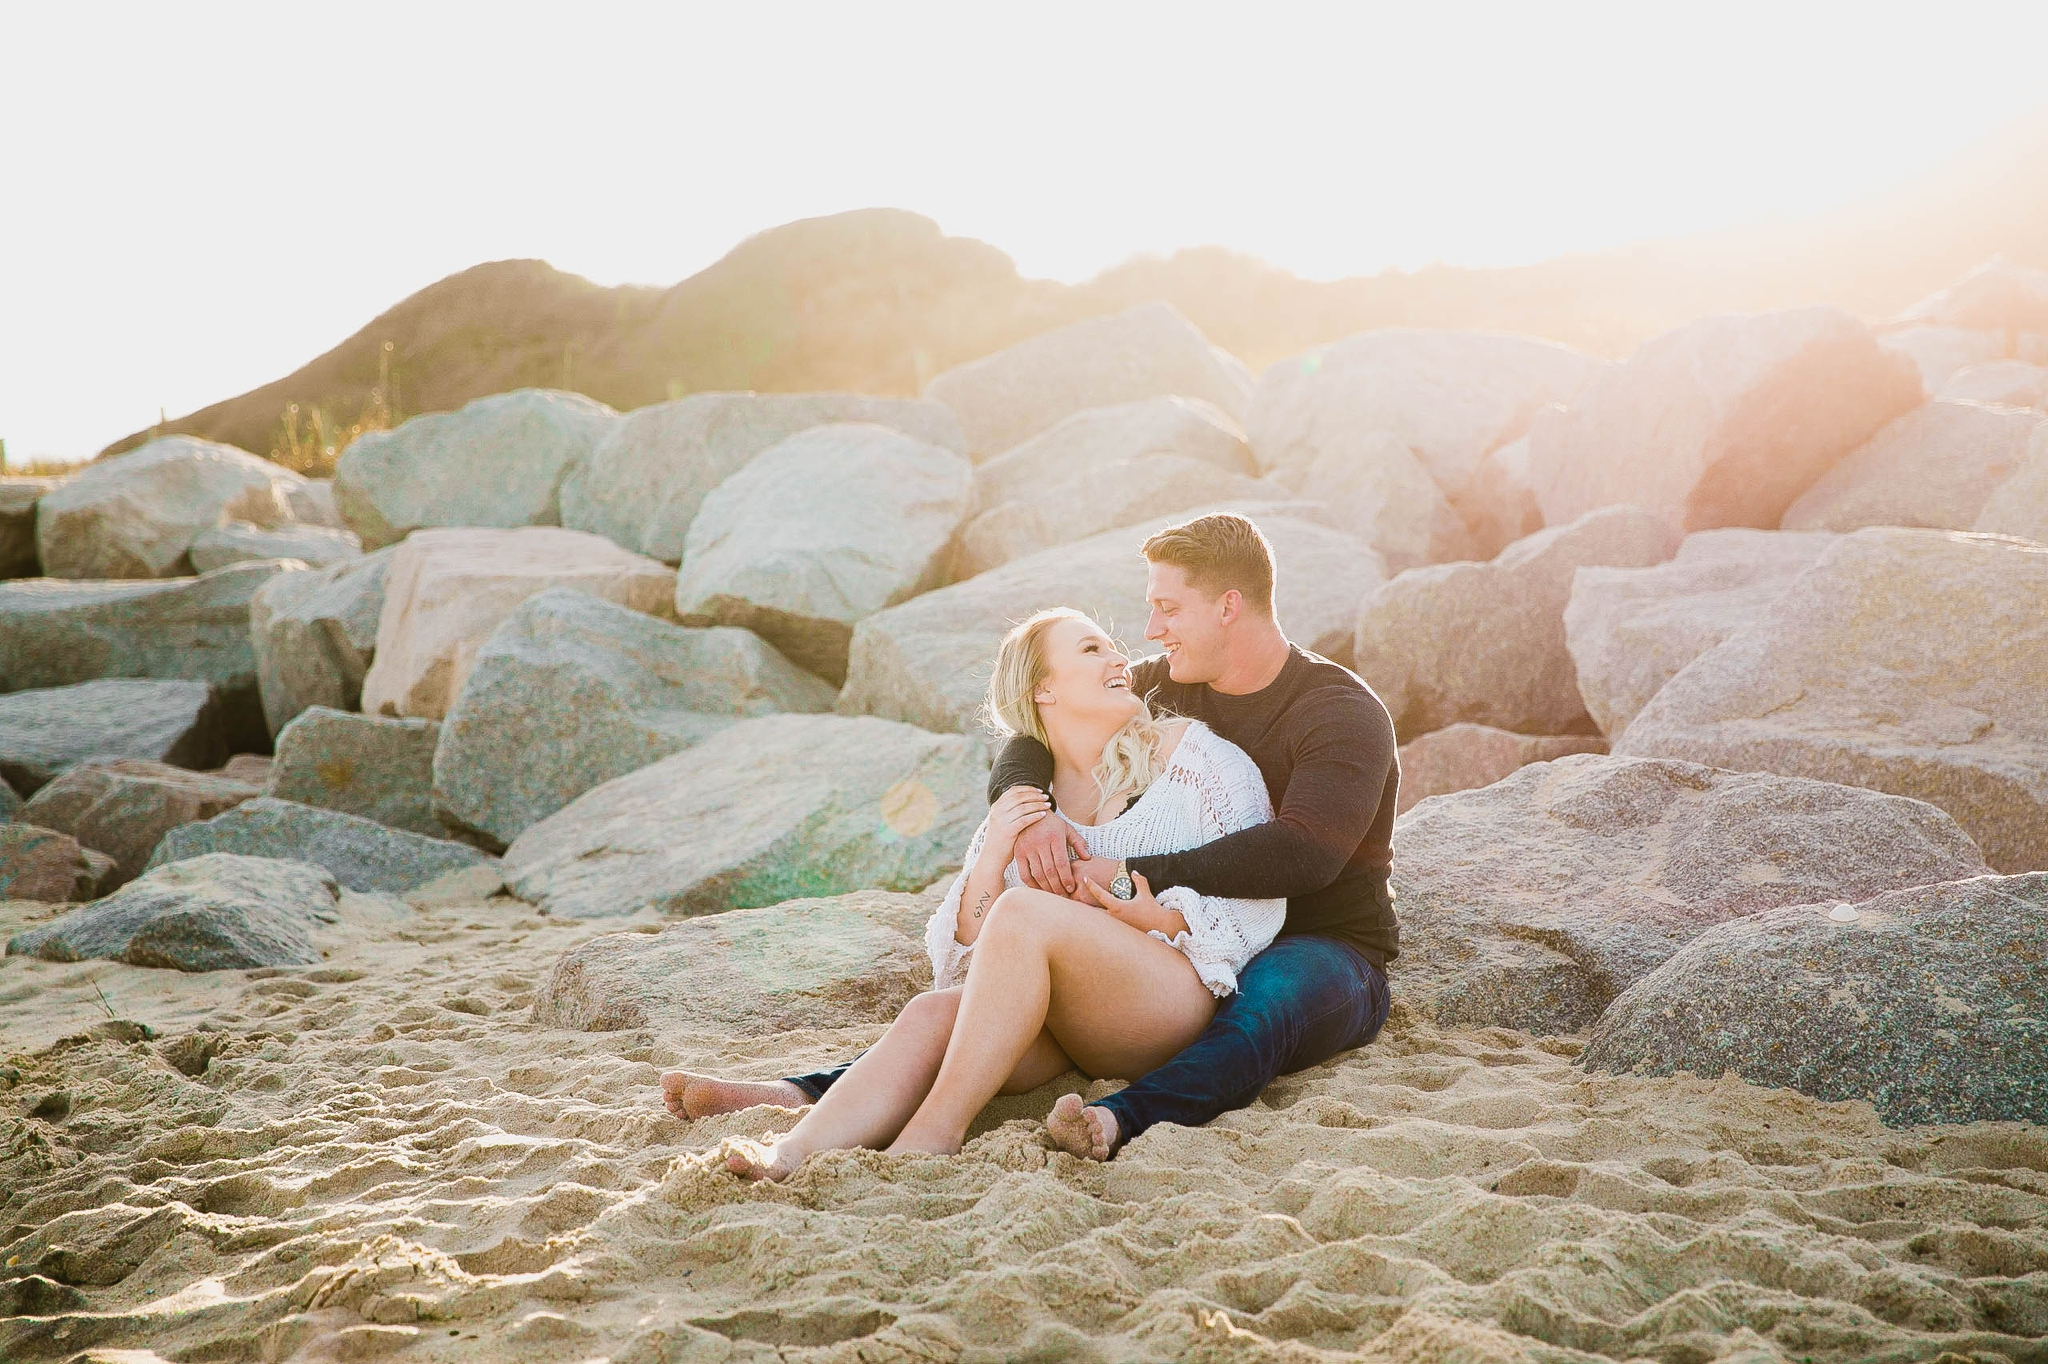 couple looking at the ocean while sitting on a sandy beach at sunset with golden hour light shining onto them - girl wearing ripped jeans shorts and a white free people sweater - Casual Beach Engagement Photography Session - Honolulu Oahu Hawaii Wedding Photographer - Johanna Dye